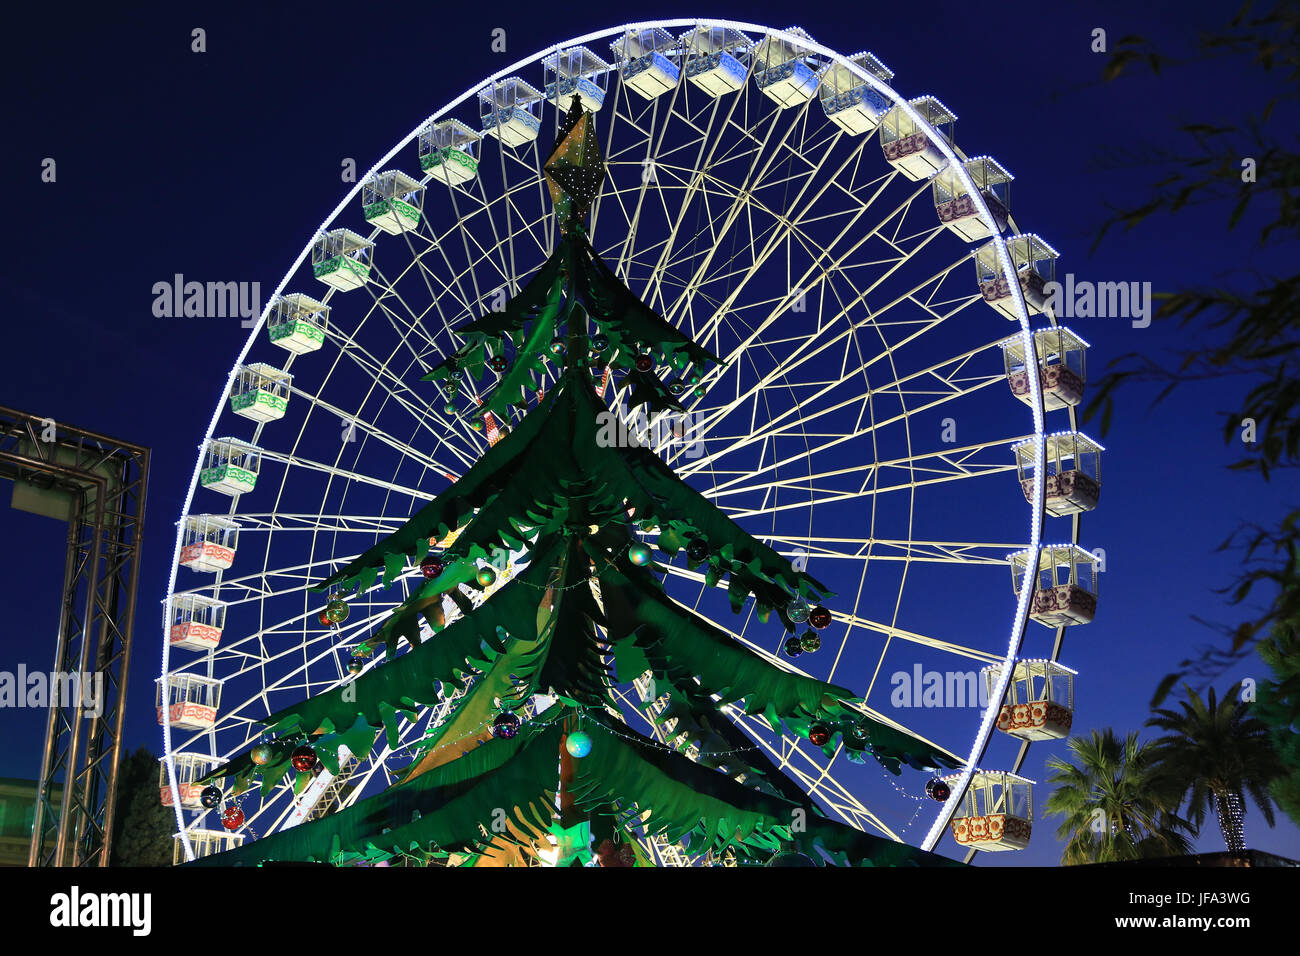 Ferris wheel in Nice at Christmas time Stock Photo